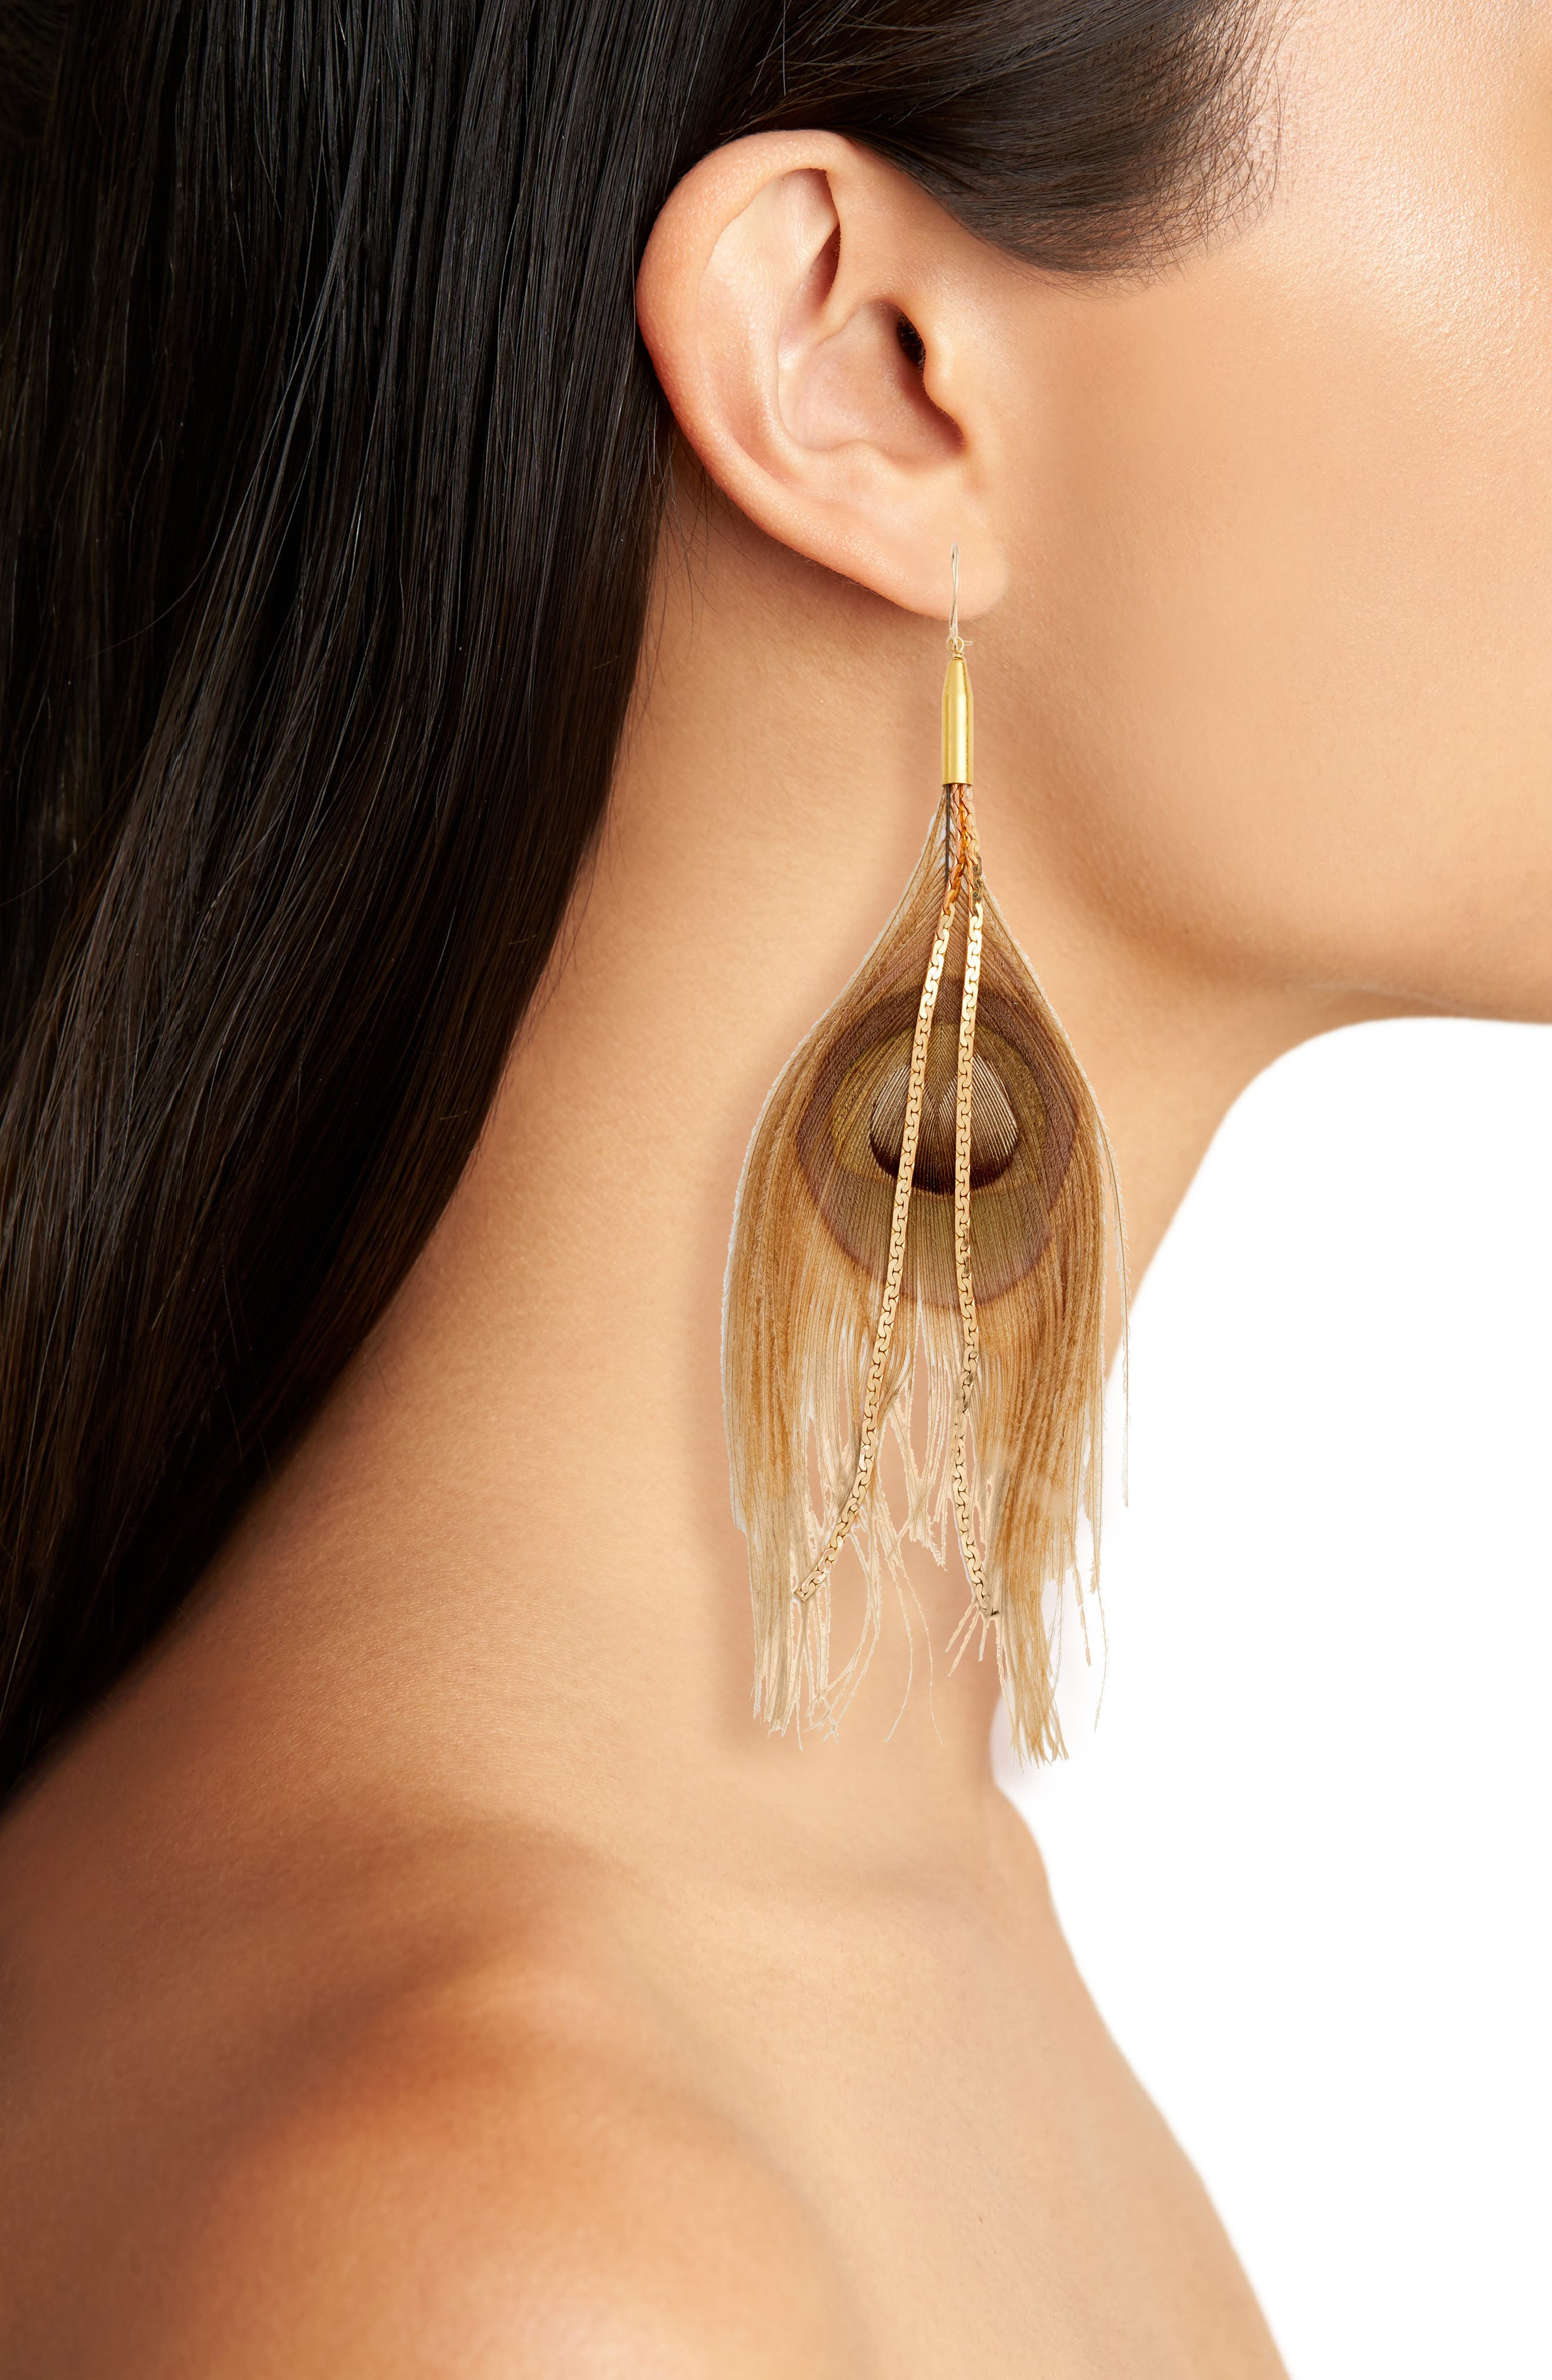 Peacock Feather Earrings,                             Alternate thumbnail 2, color,                             Beige